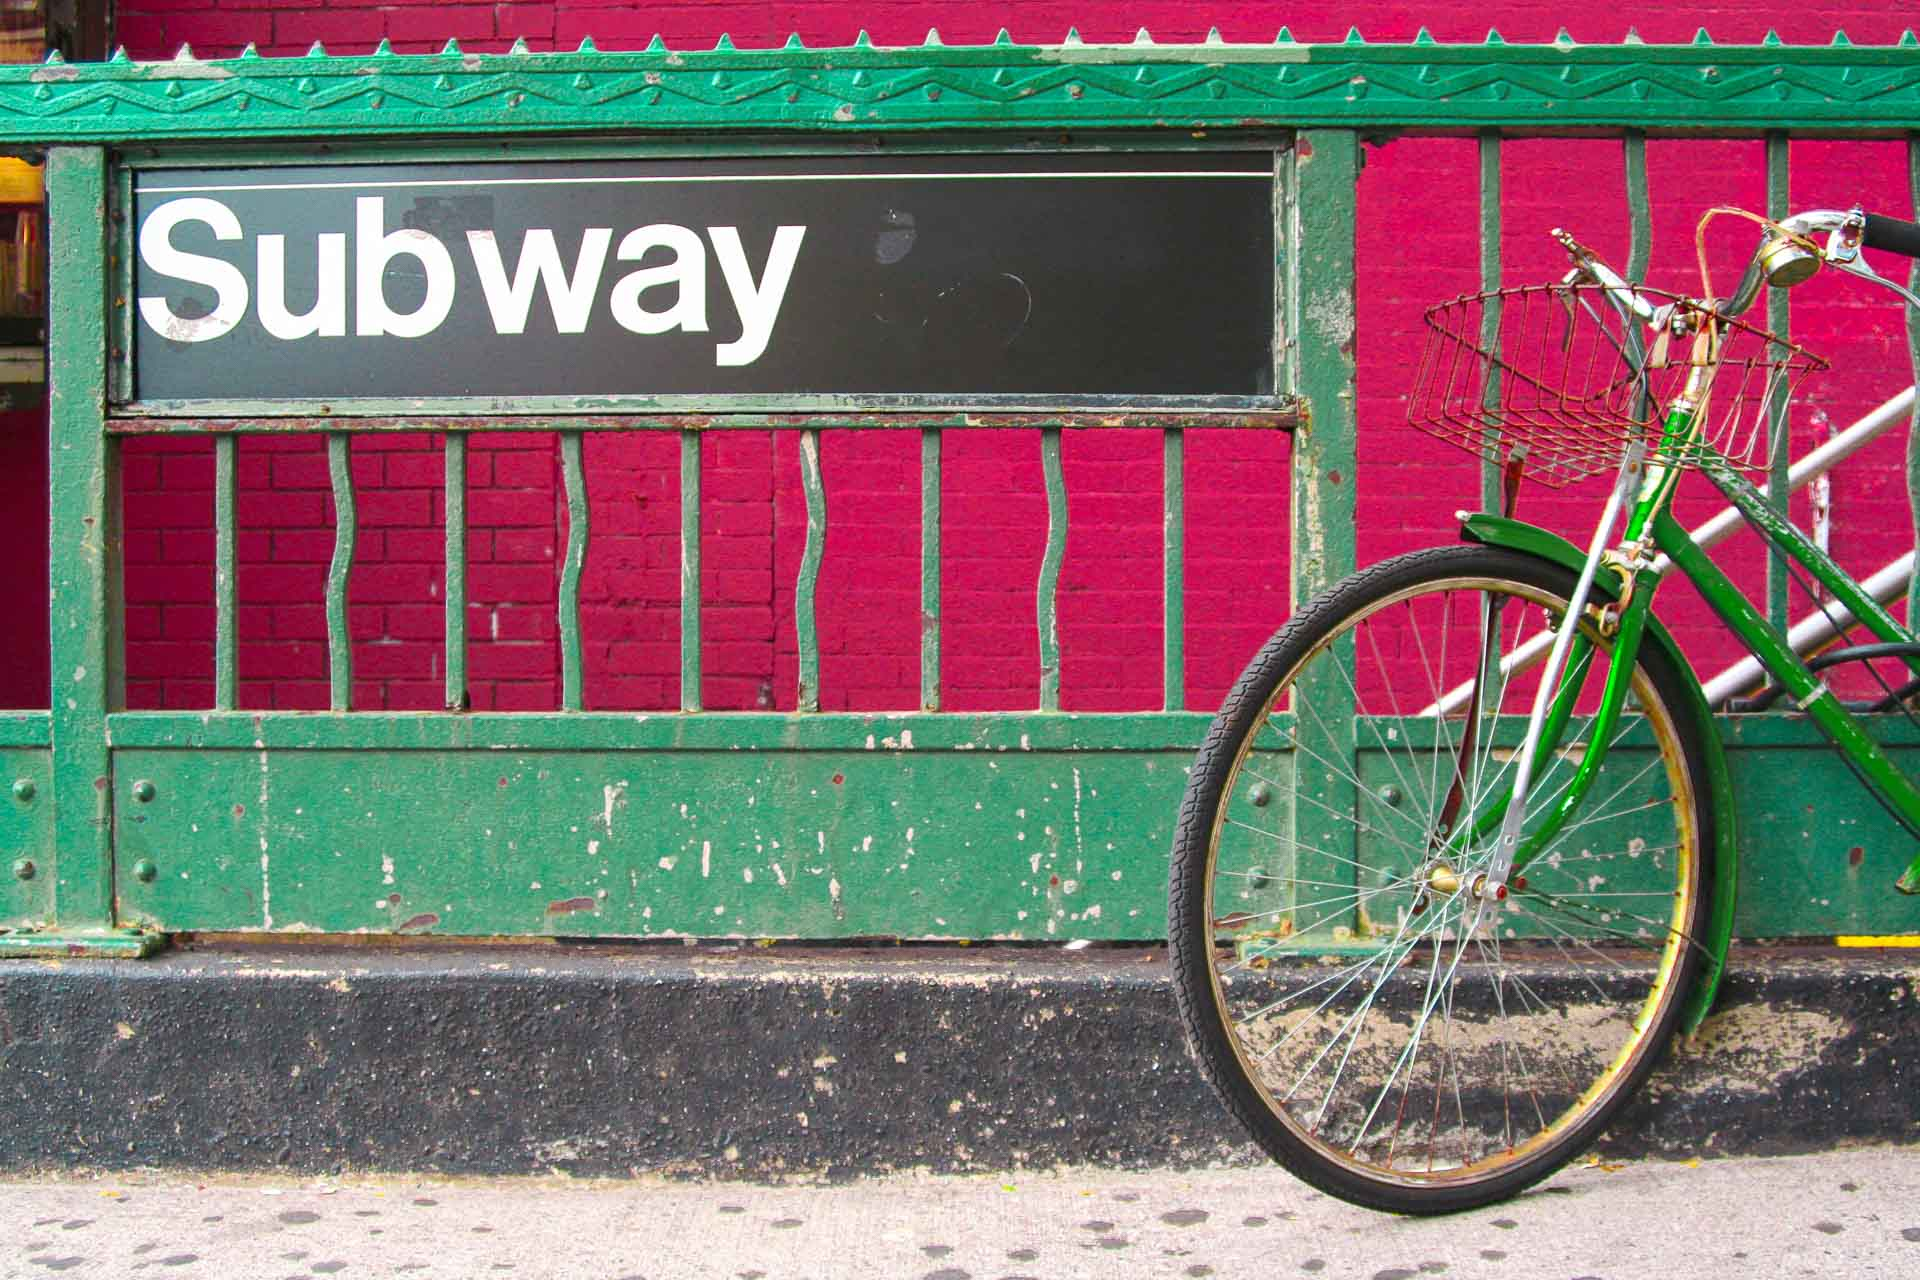 New York City Subway Entrance and green bicycle